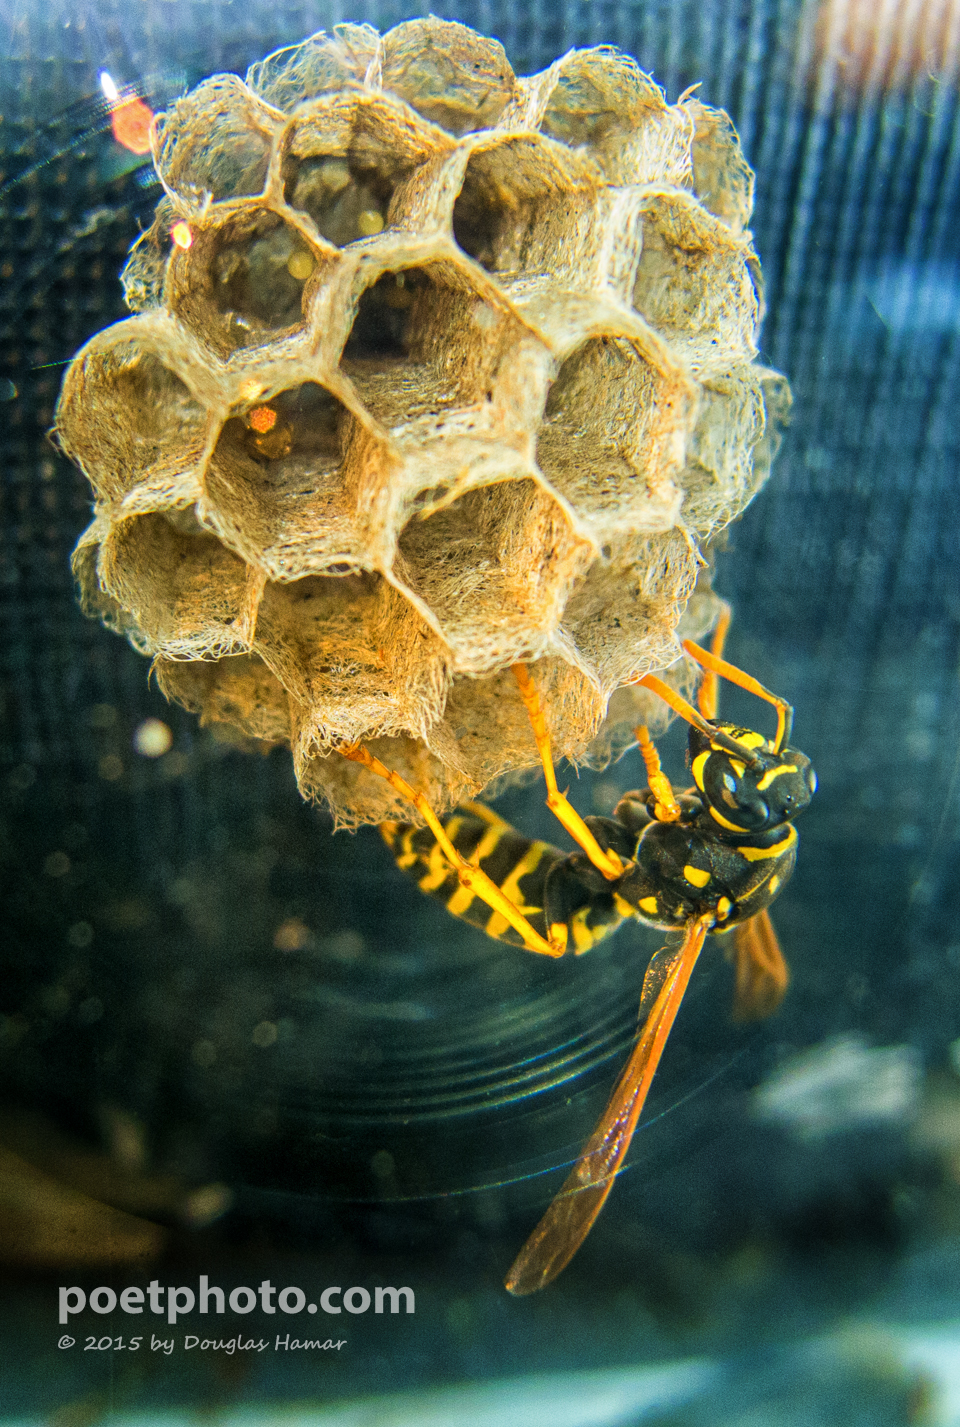 Paper Wasp-